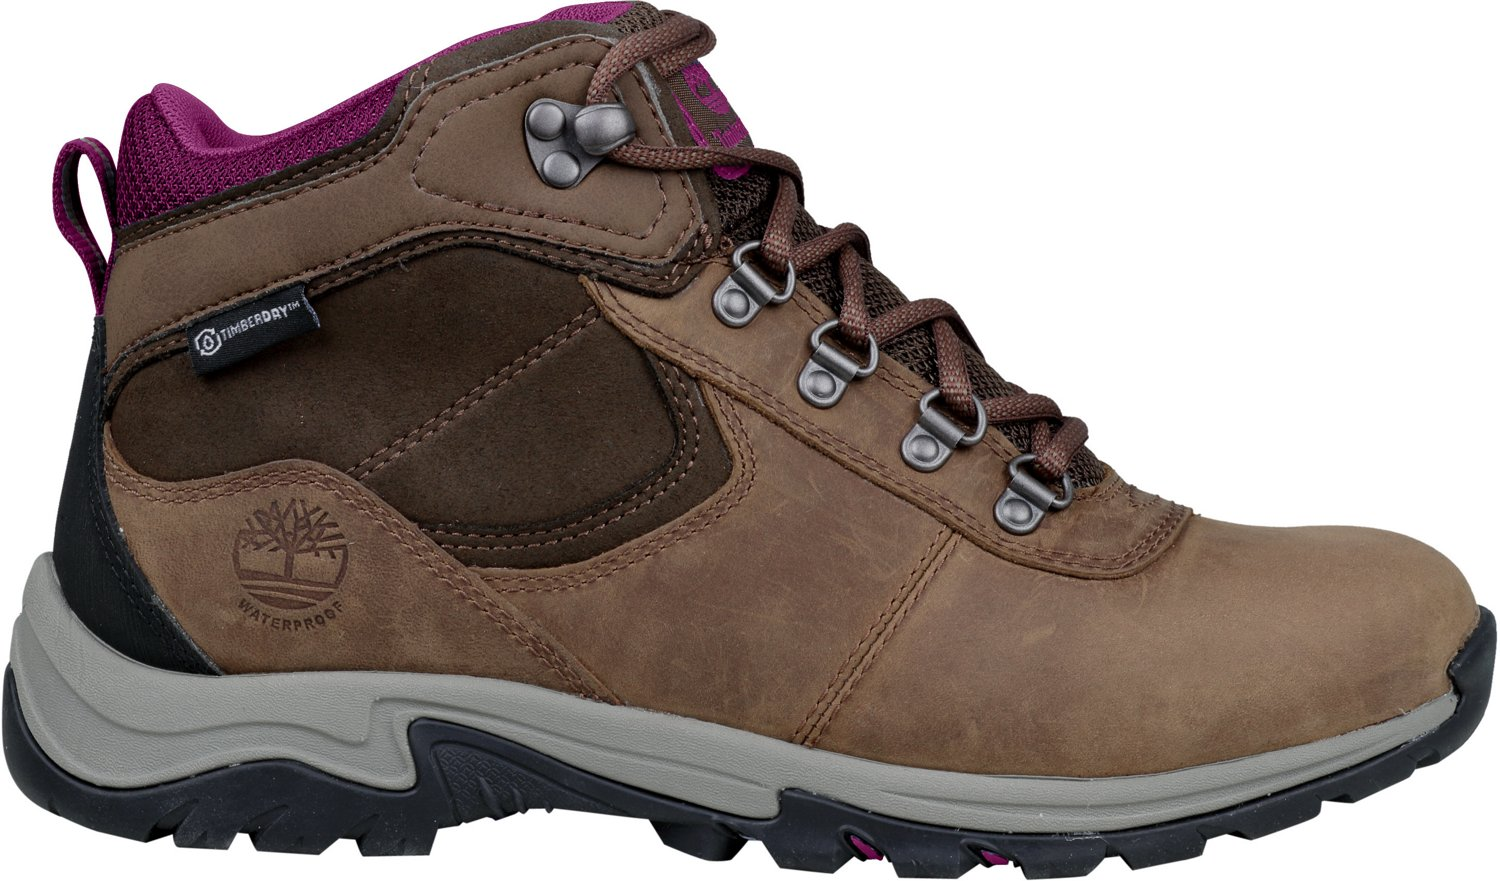 a4914499cbce Display product reviews for Timberland Women s Mt. Maddsen Waterproof  Leather Hiking Boots